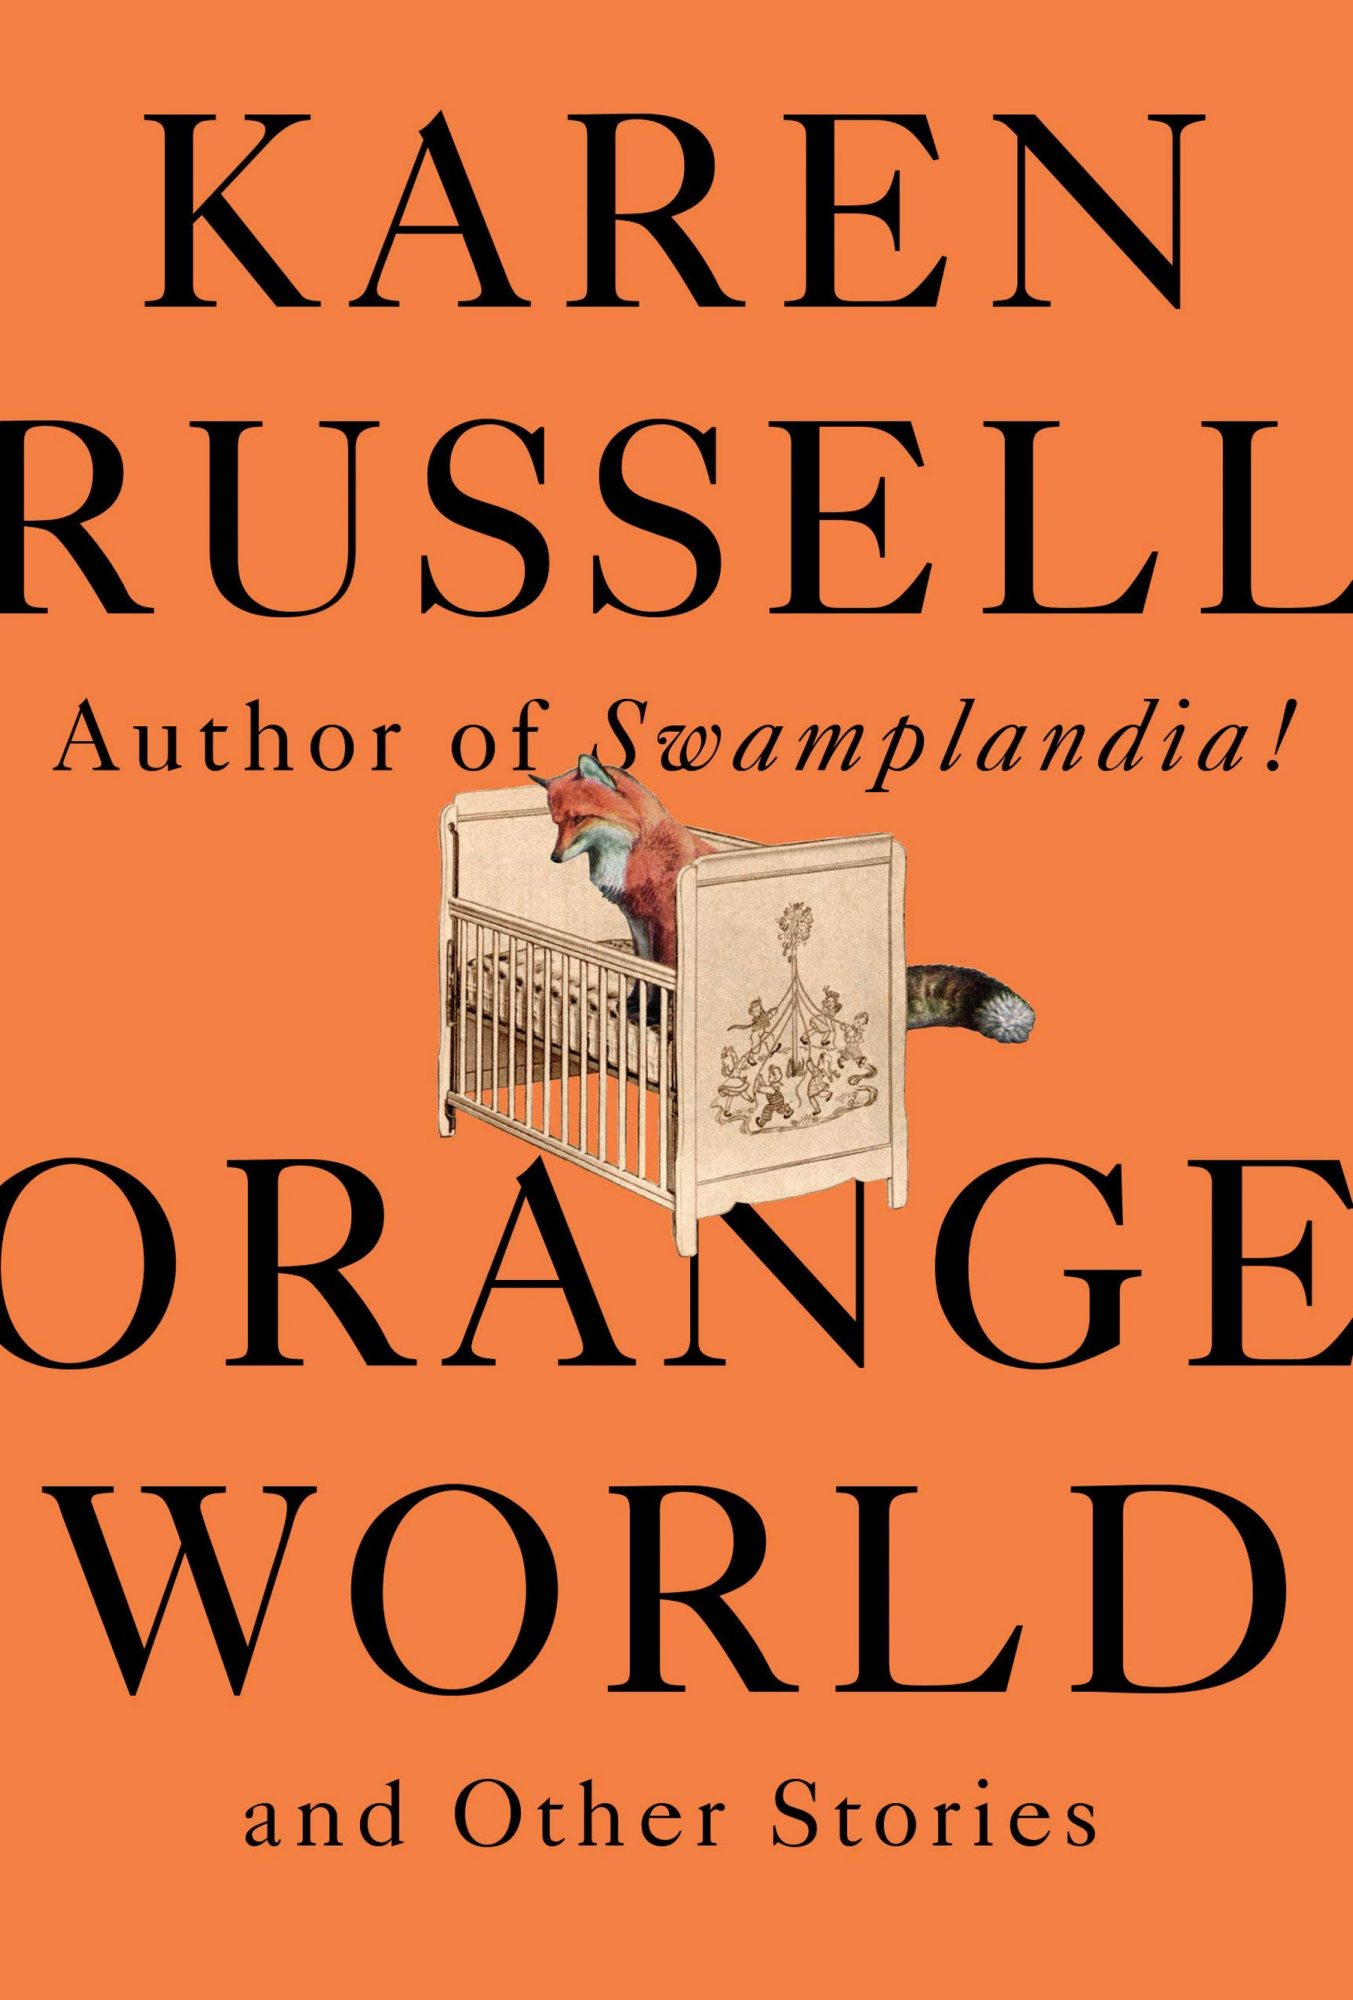 Orange World and Other Stories Hardcover – Deckle Edge, May 14, 2019 by Karen Russell (Author) CR: Knopf